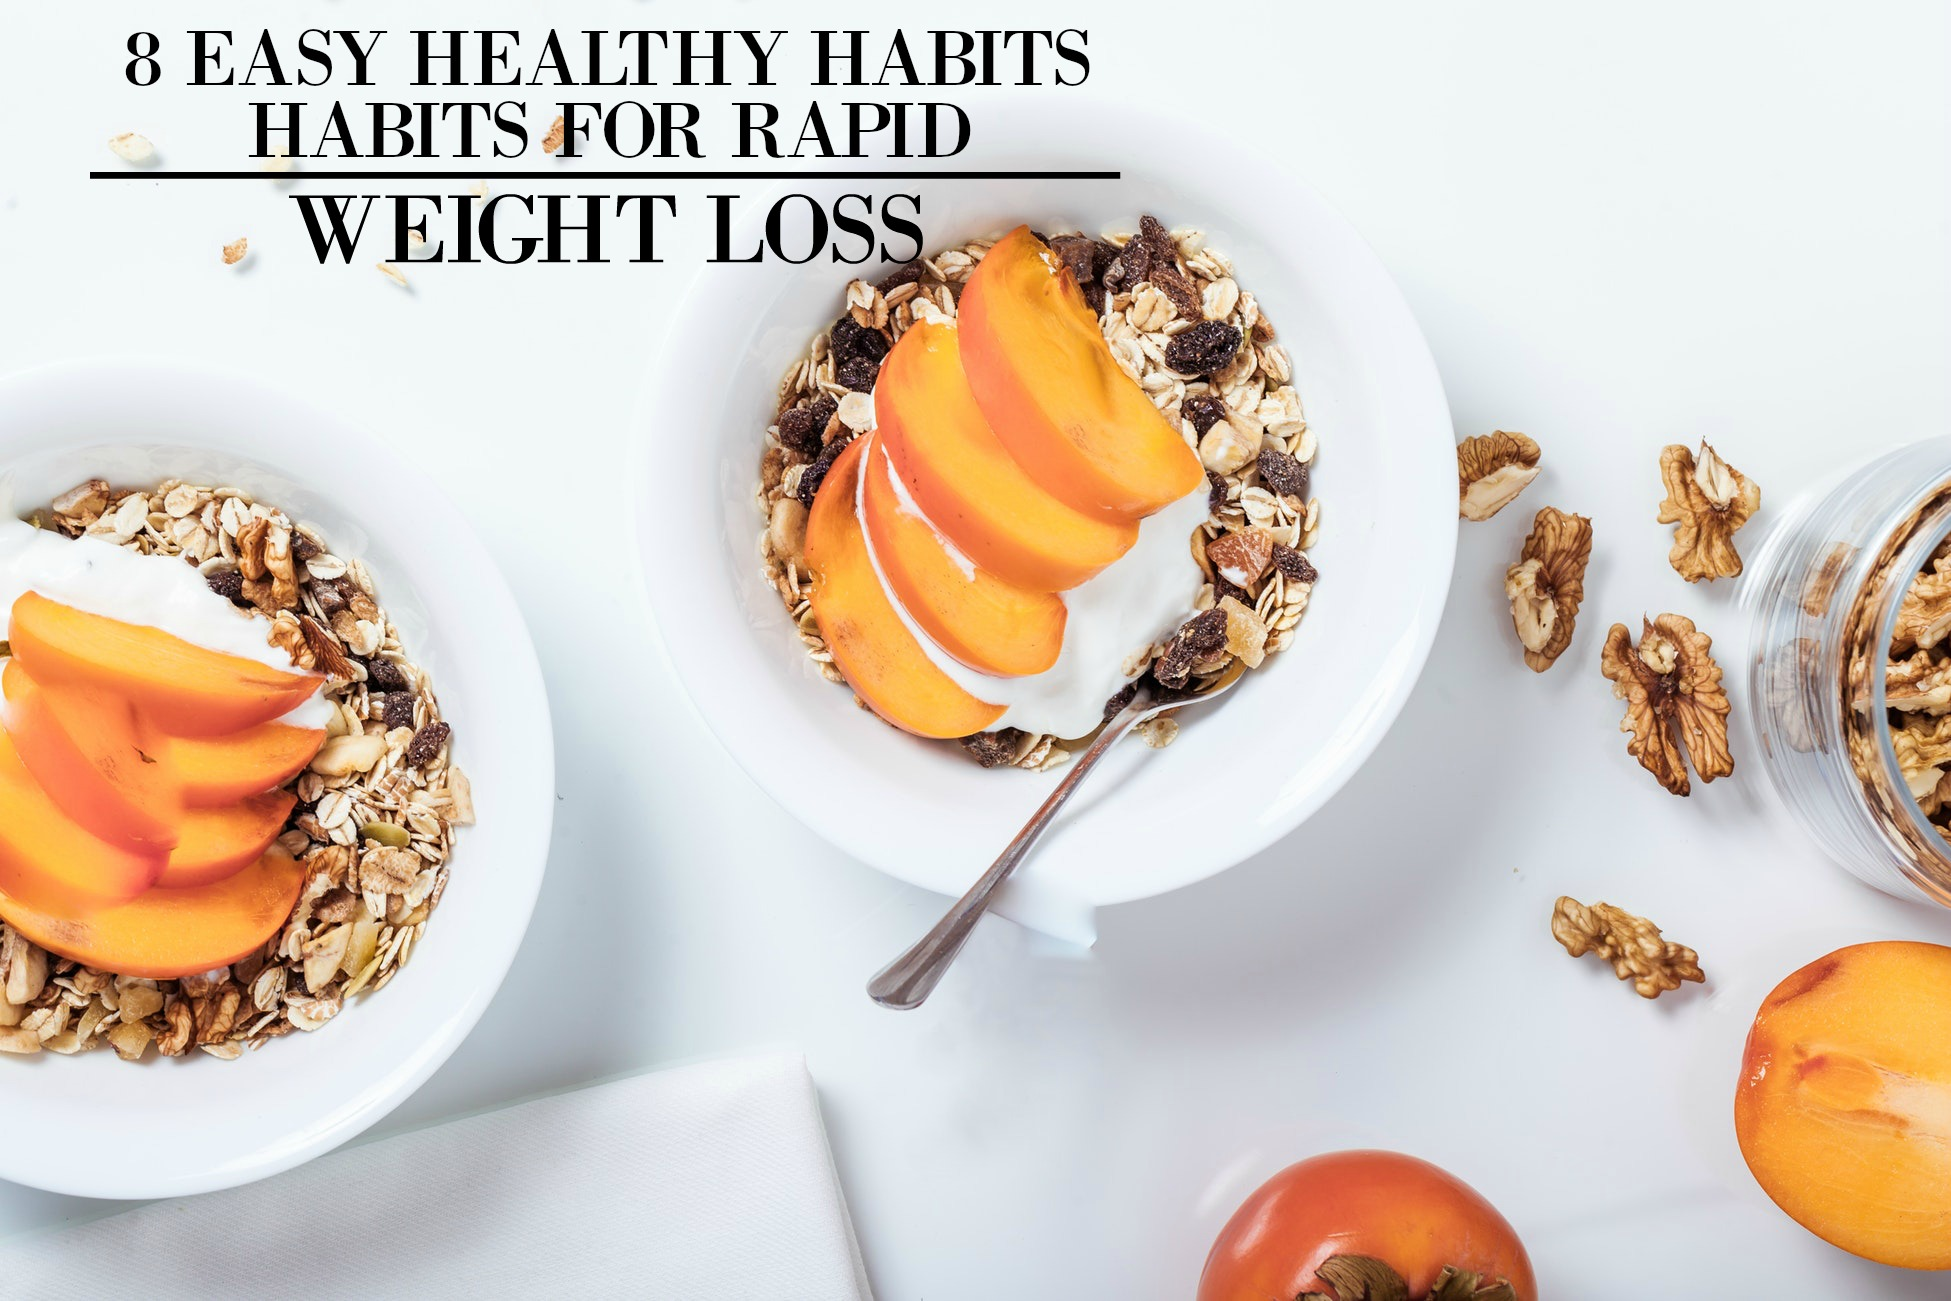 8 Easy Healthy Habits For Rapid Weight Loss